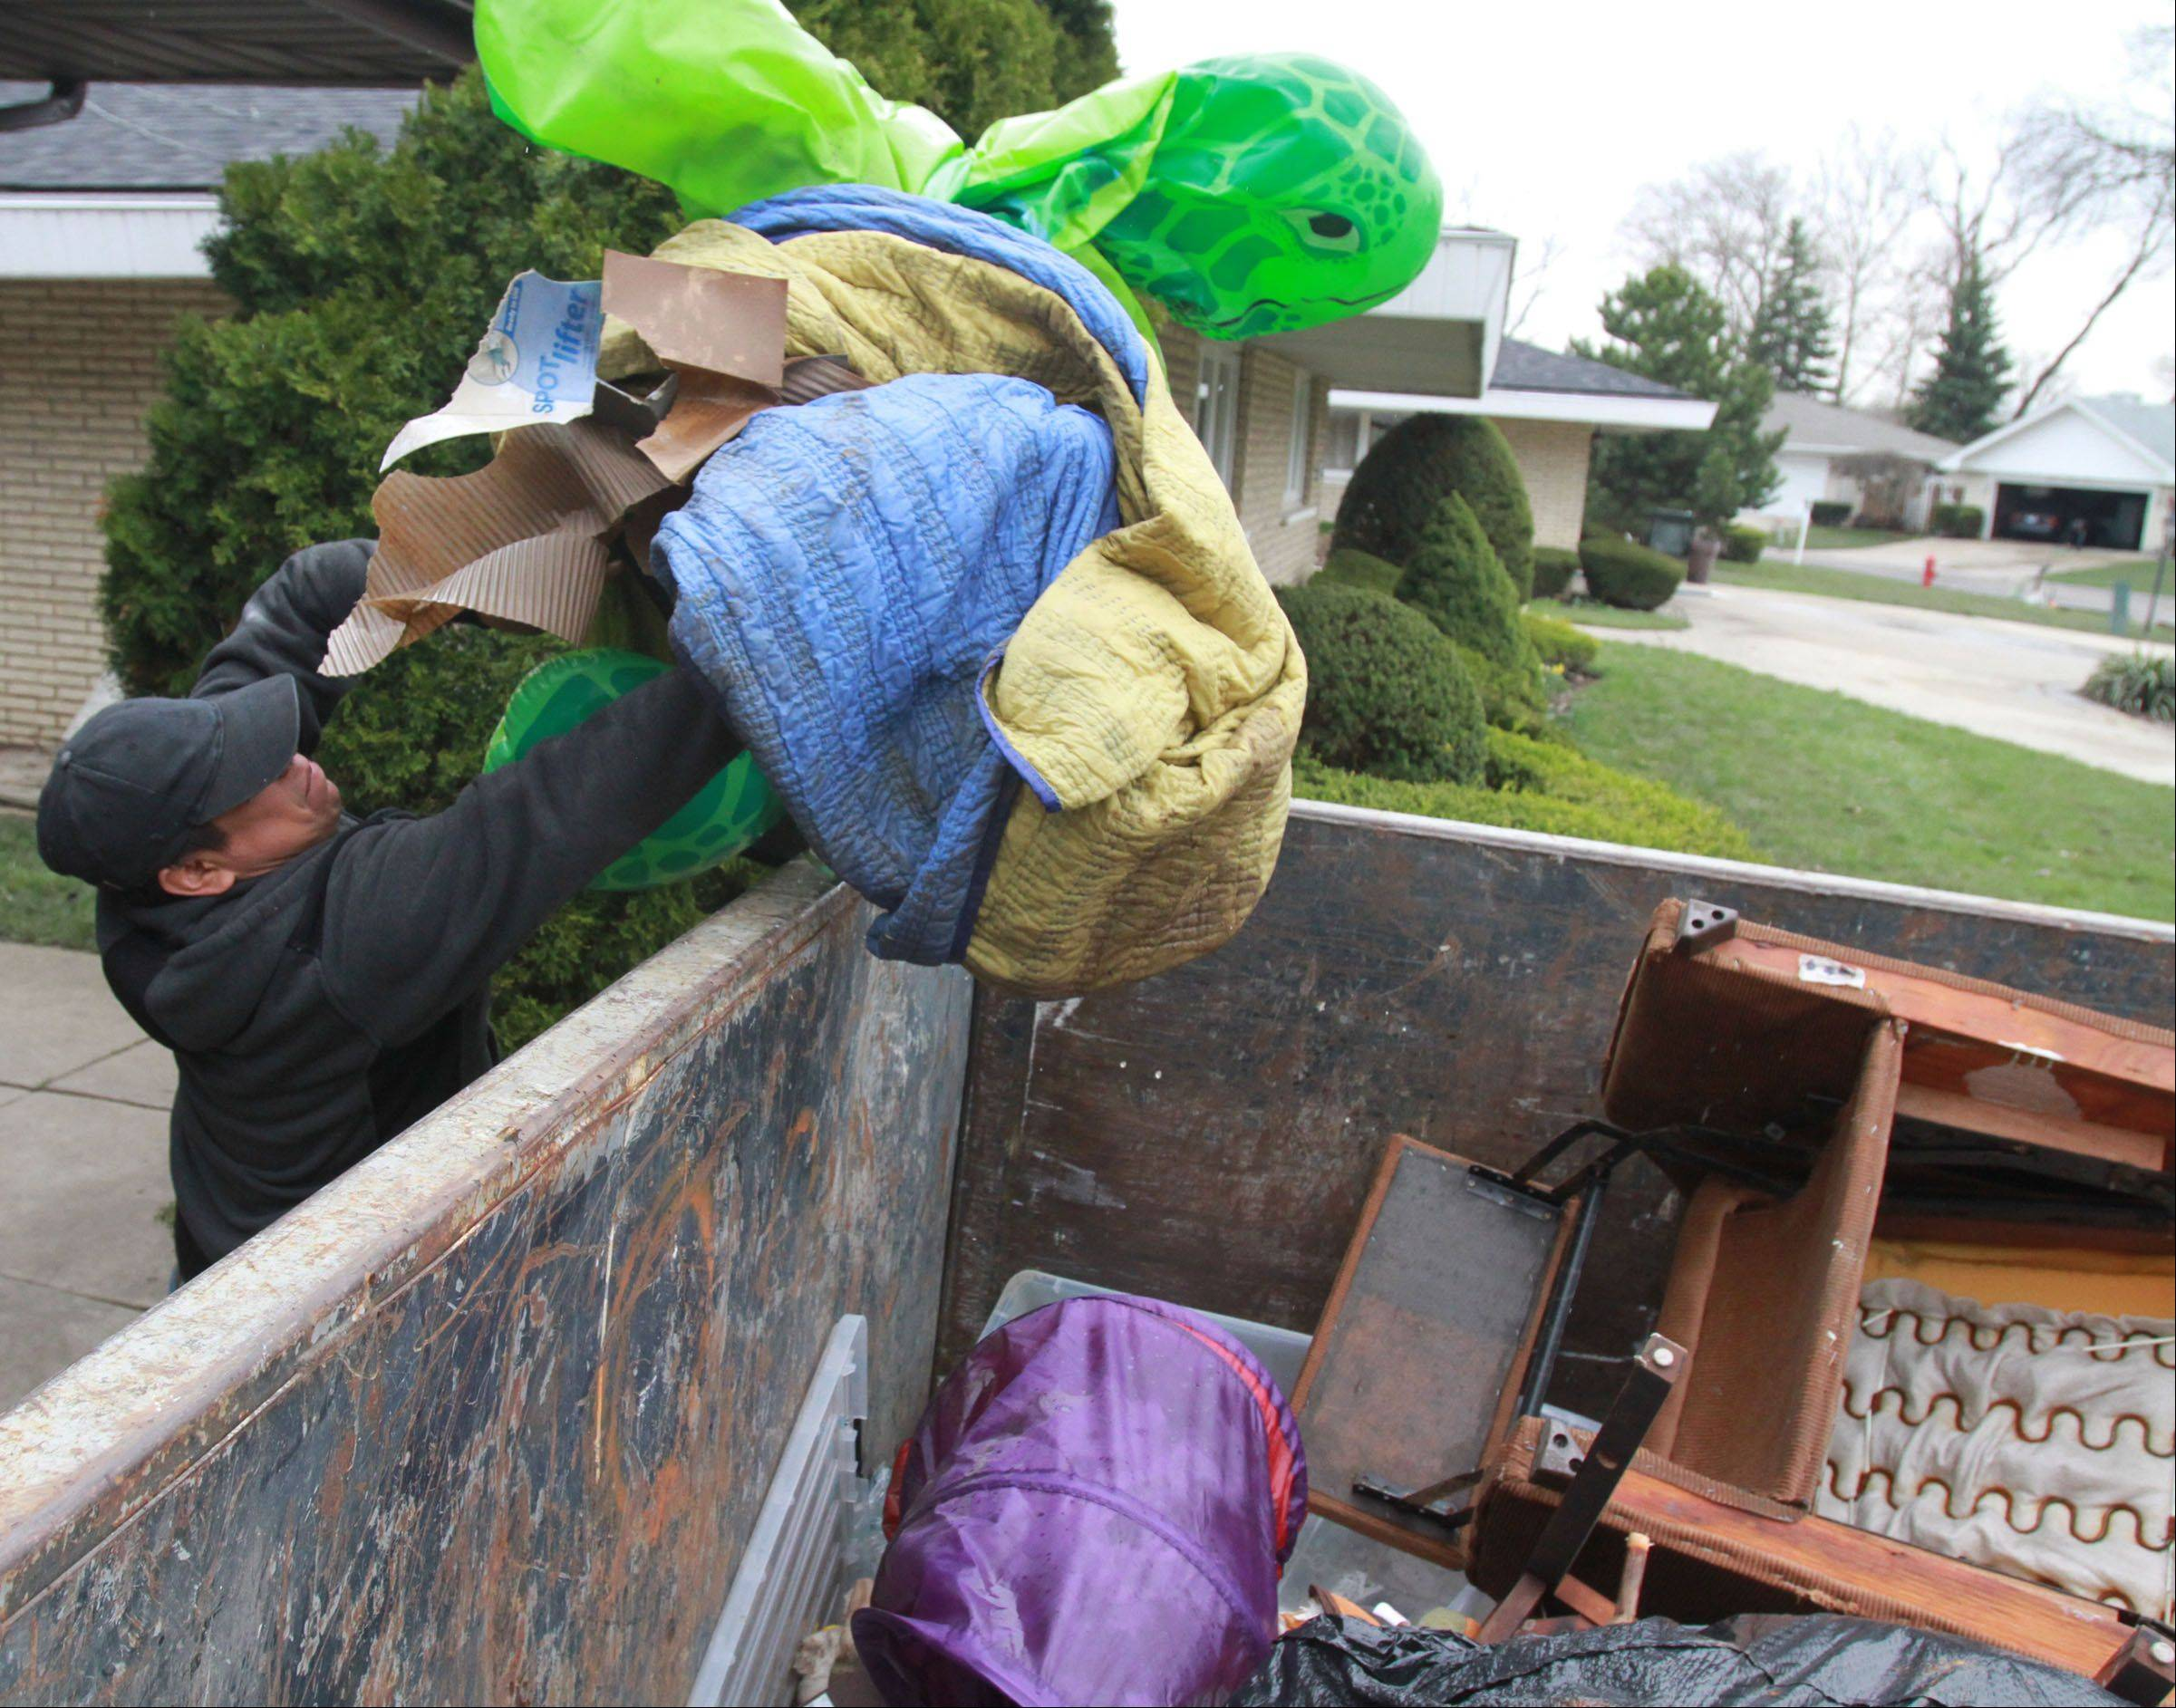 Danny Mateos, with Arthur J. Rogers and Company, throws toys into a dumpster at Kathi And Russell Fantetti's home on Berry Lane in Des Plaines on Tuesday, April 23. Kathi said they lost everything in the basement including furniture.